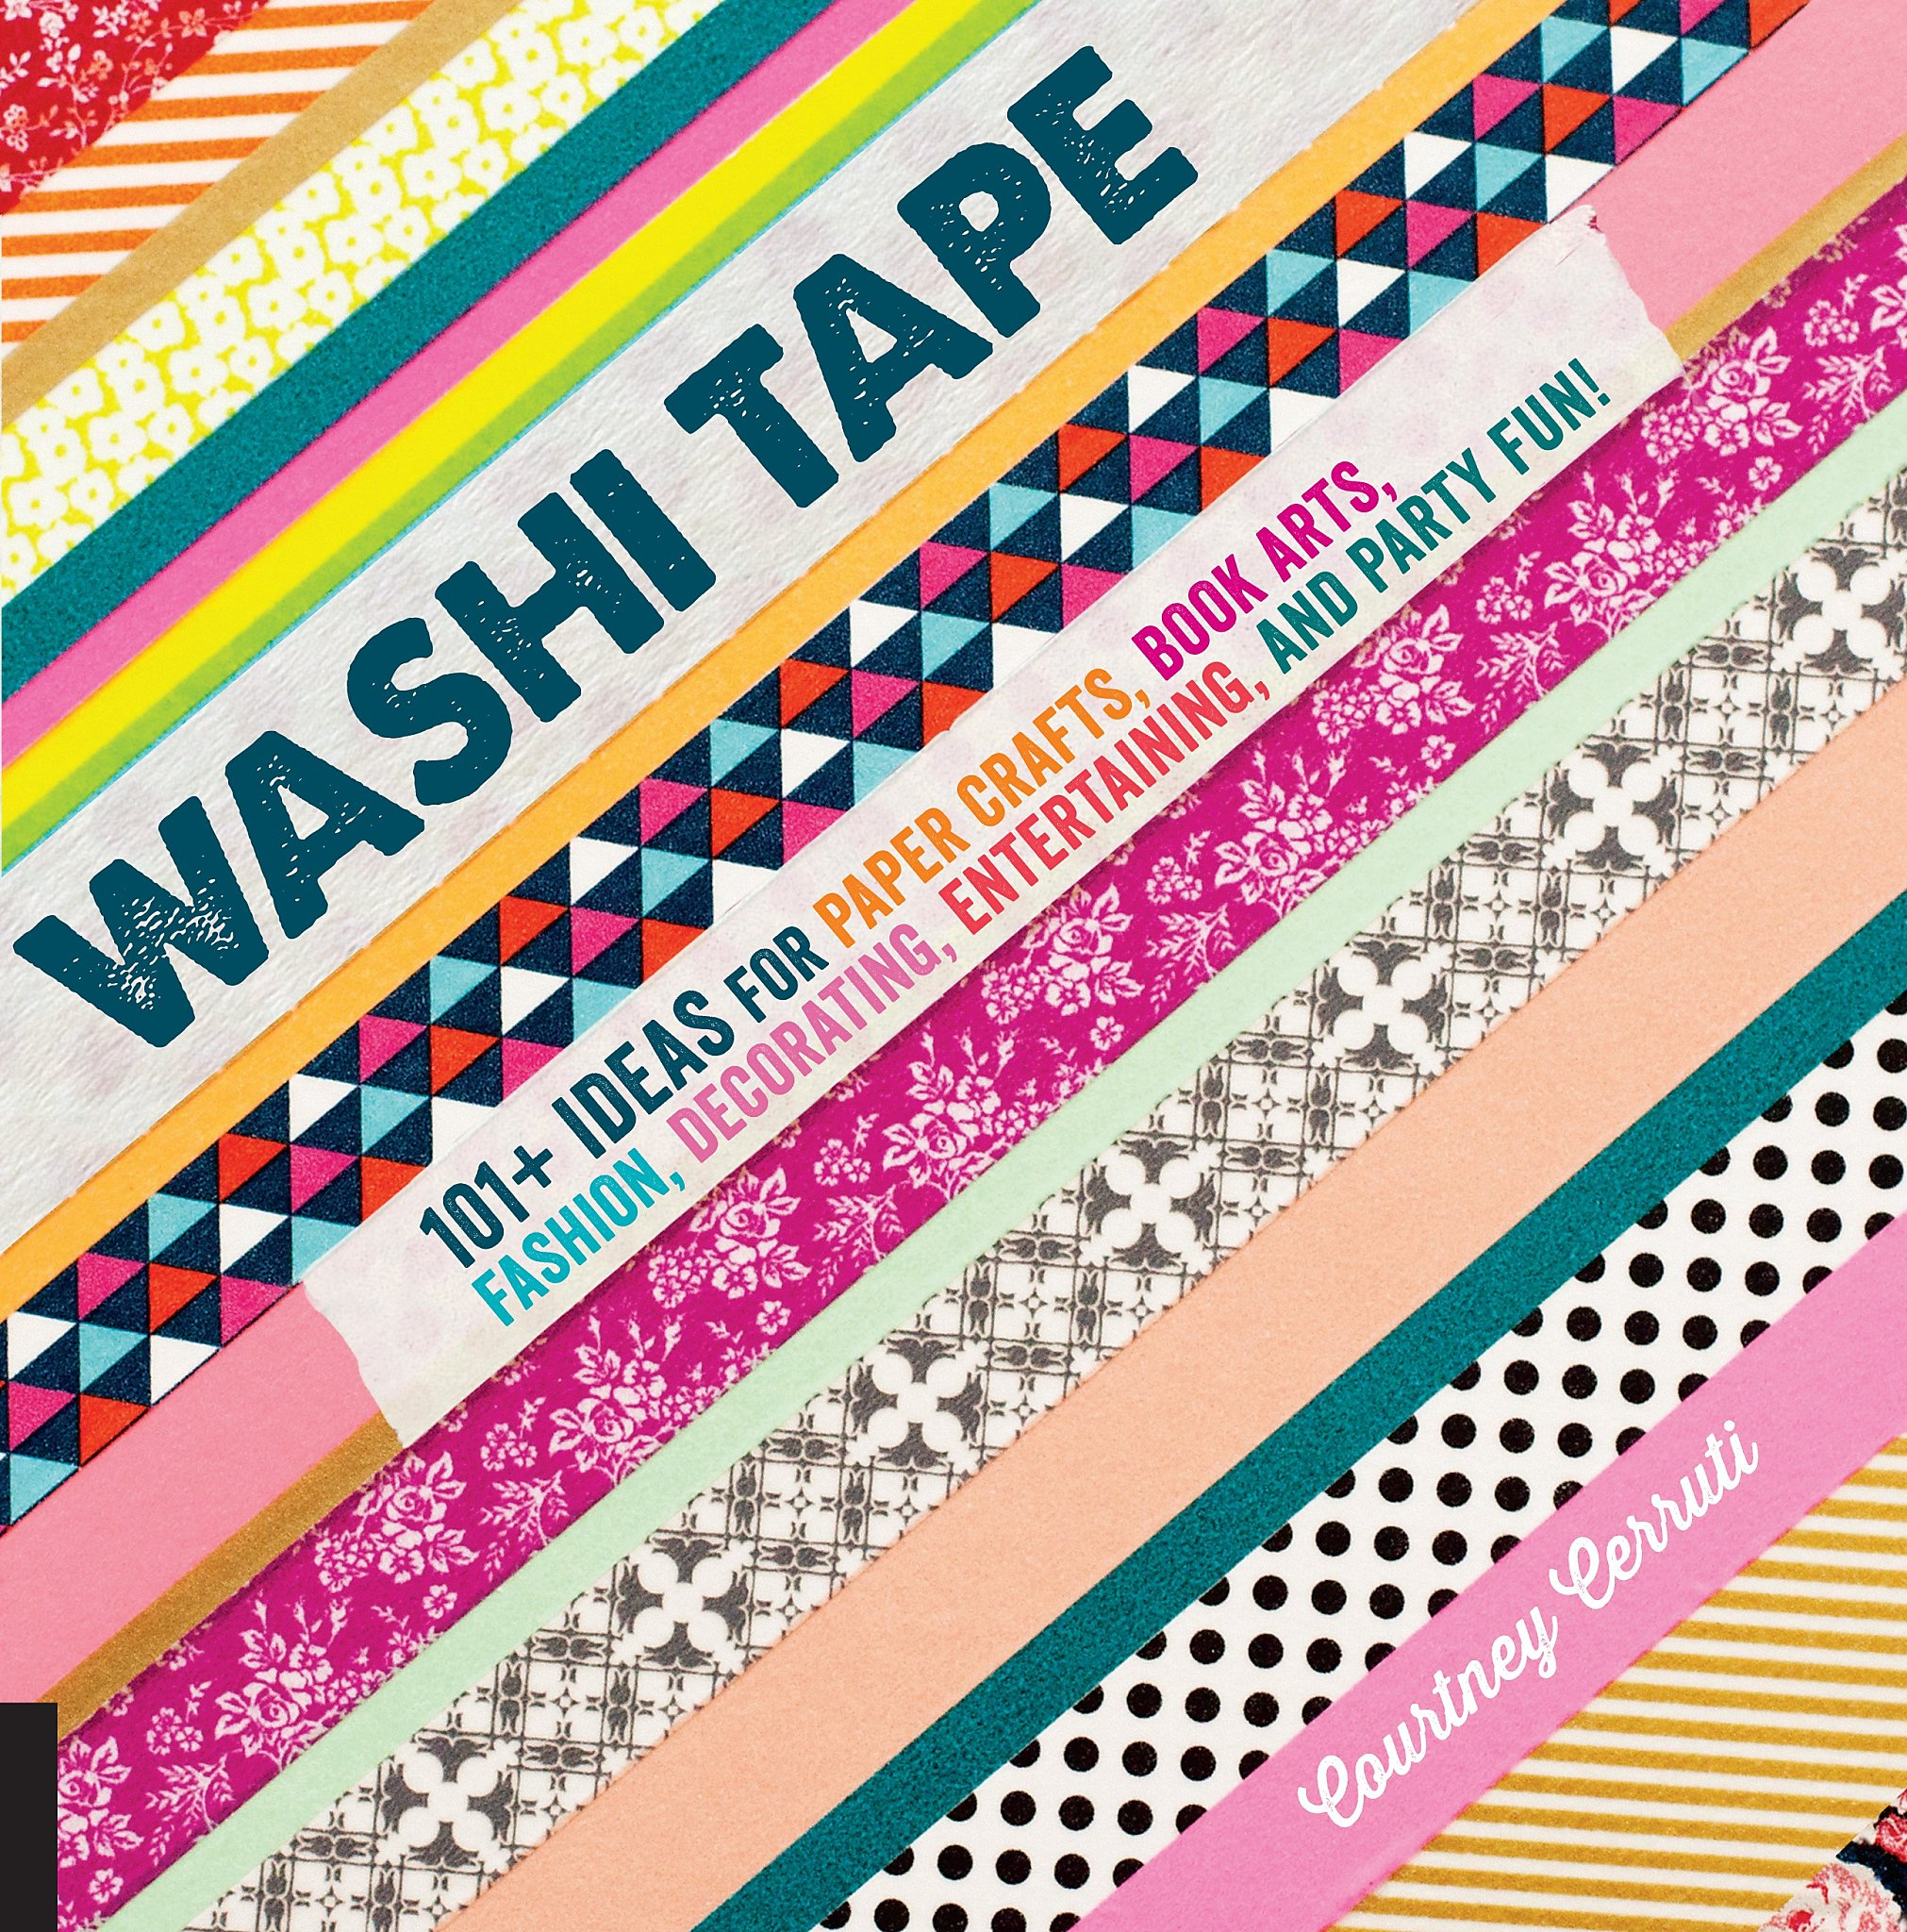 Washi Tape Book Cover Ideas : Books filled with diy ideas for decoration and craft